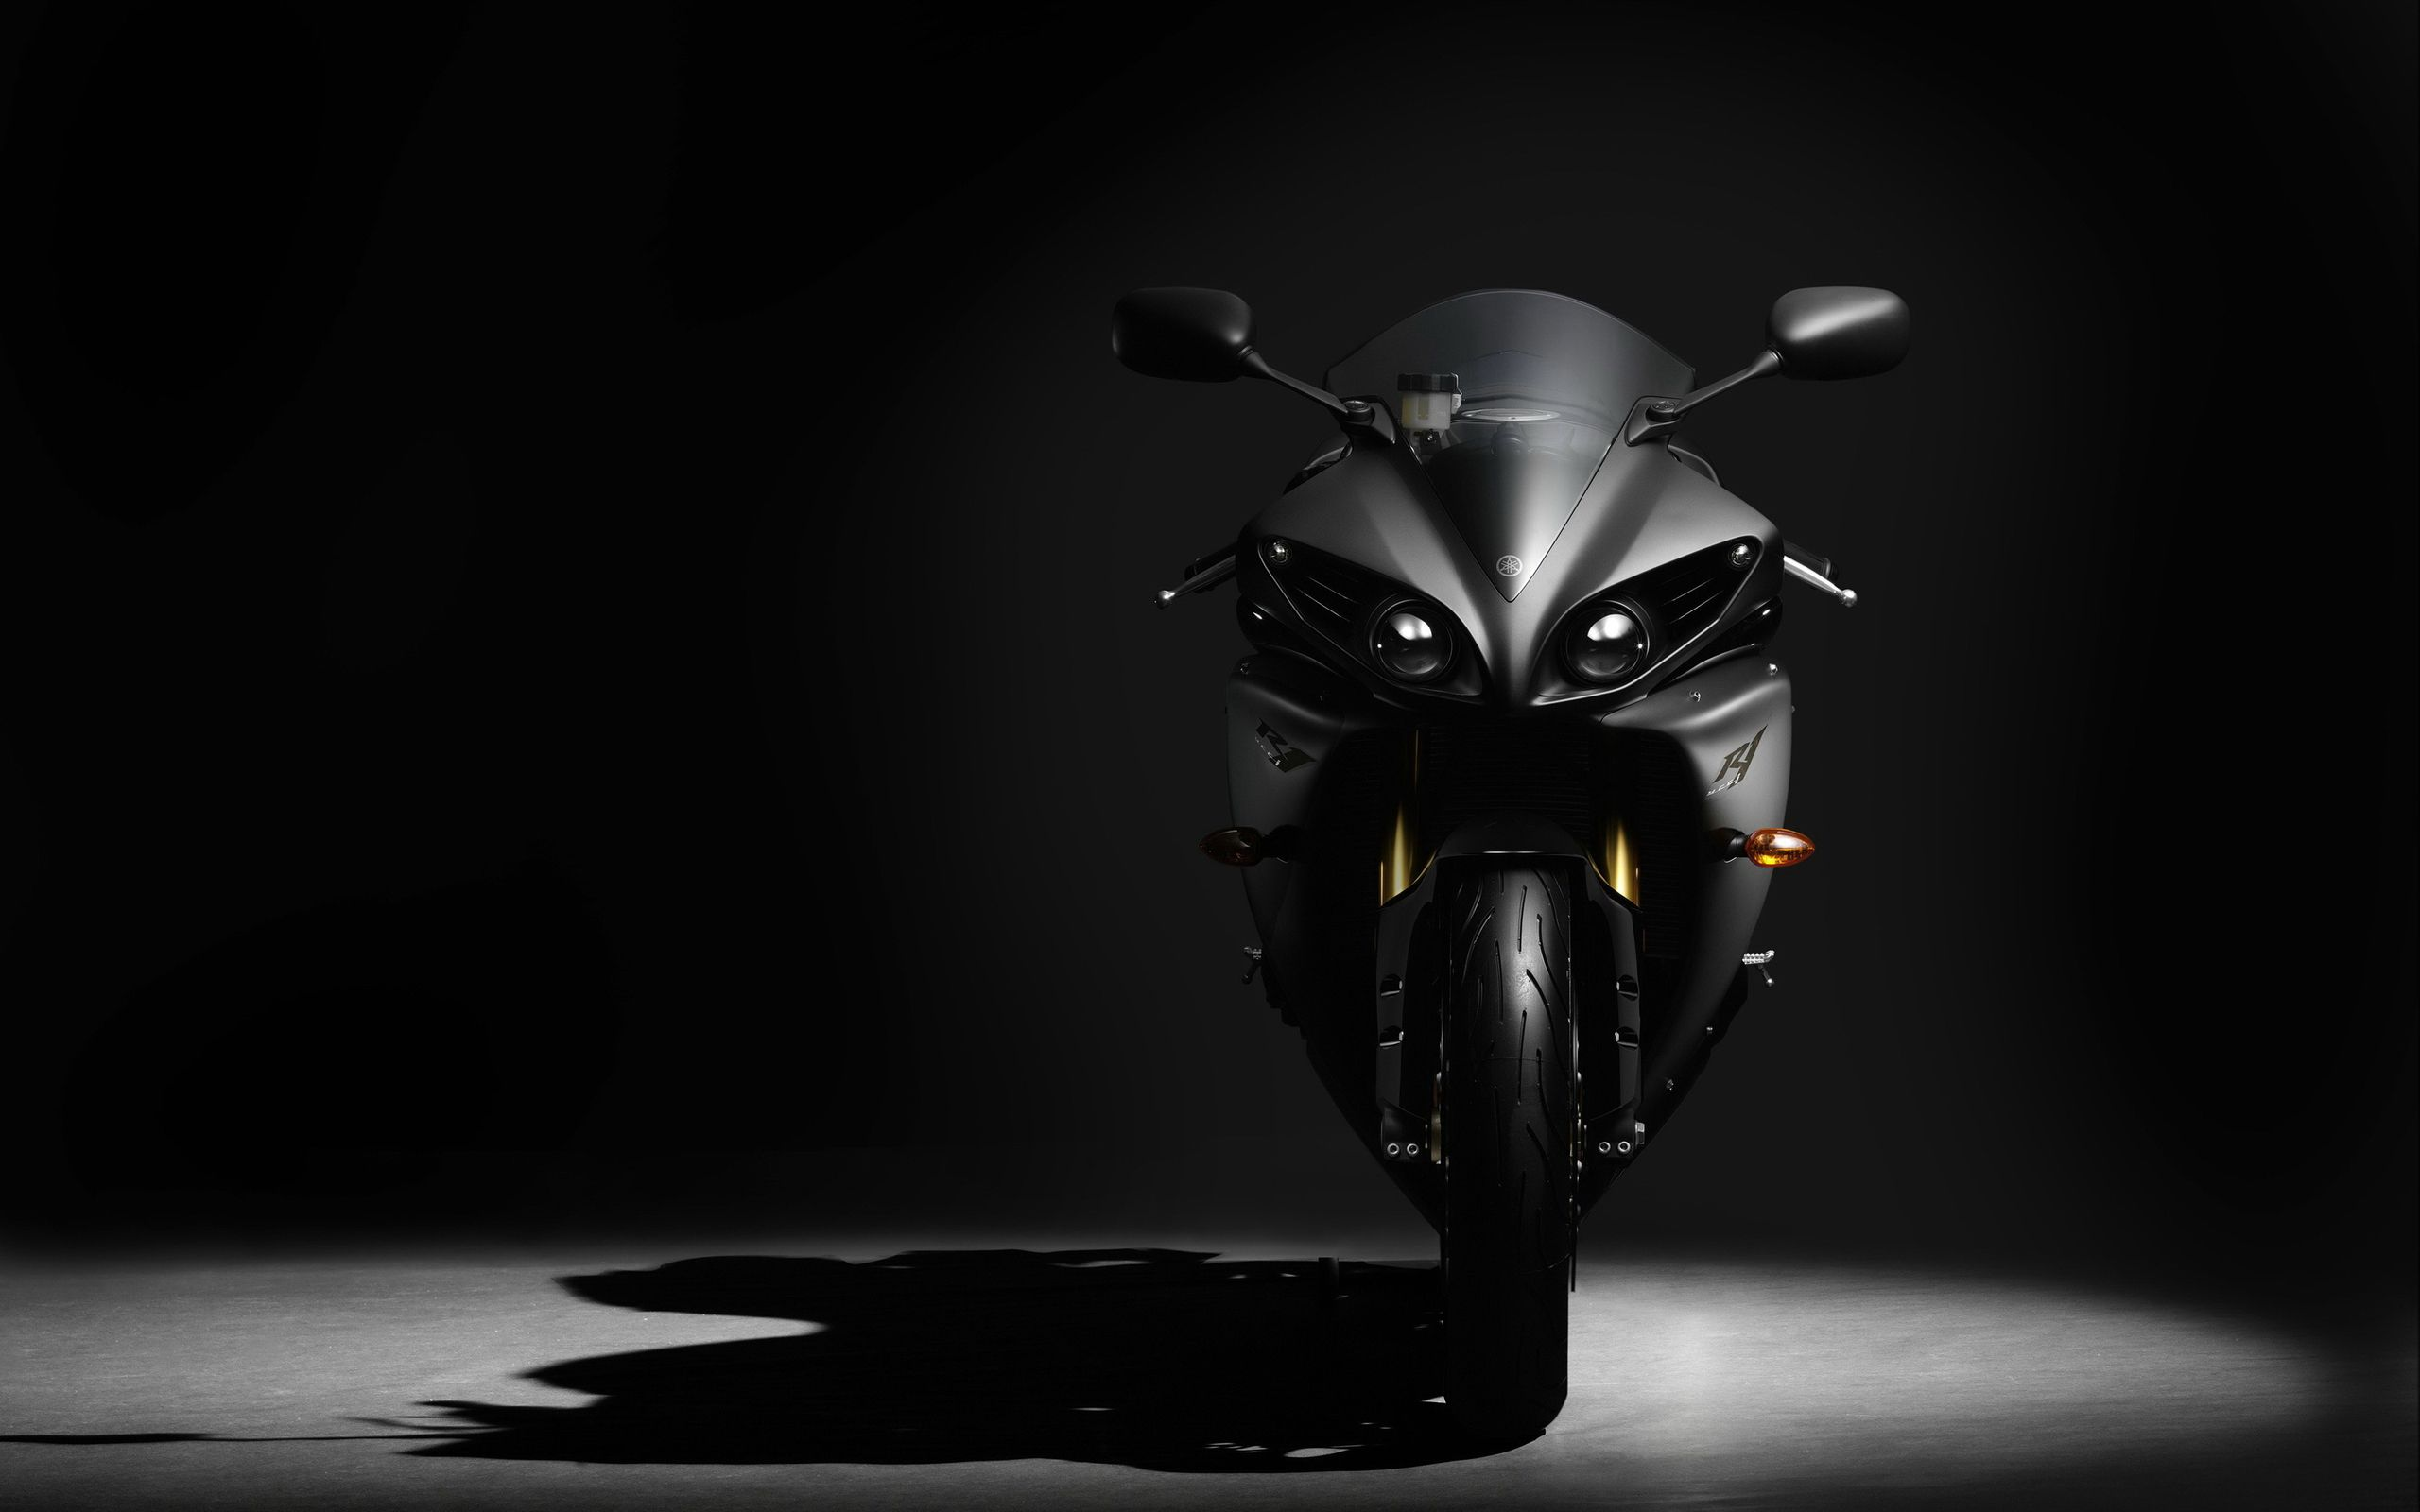 Yamaha R1 Wallpapers Yamaha Bikes Motorcycle Wallpaper Yamaha